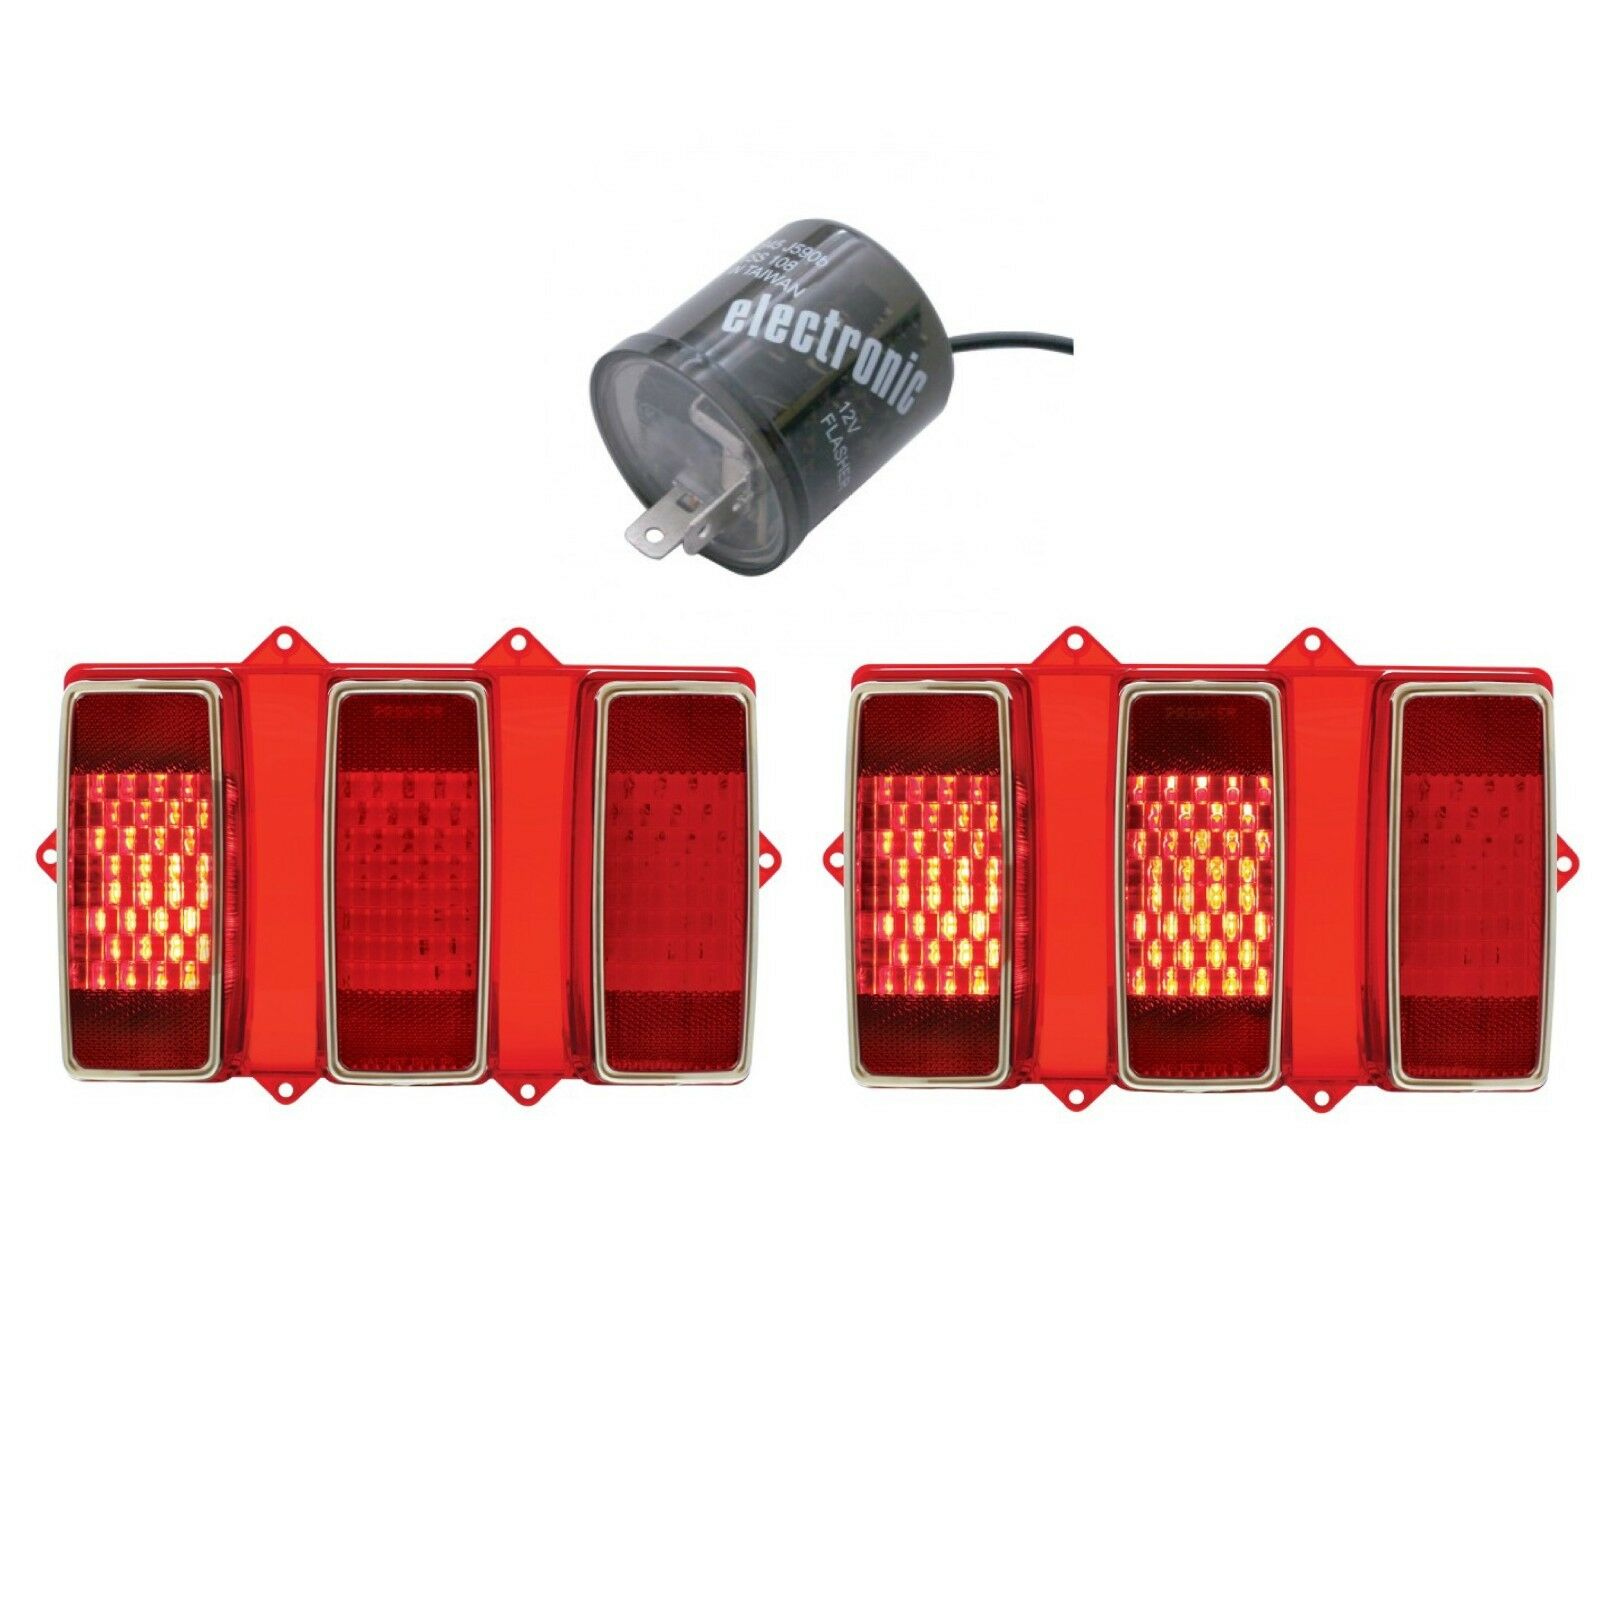 110107-2 1969 Ford Mustang Sequential LED Tail Light Pair/Set with LED Flasher